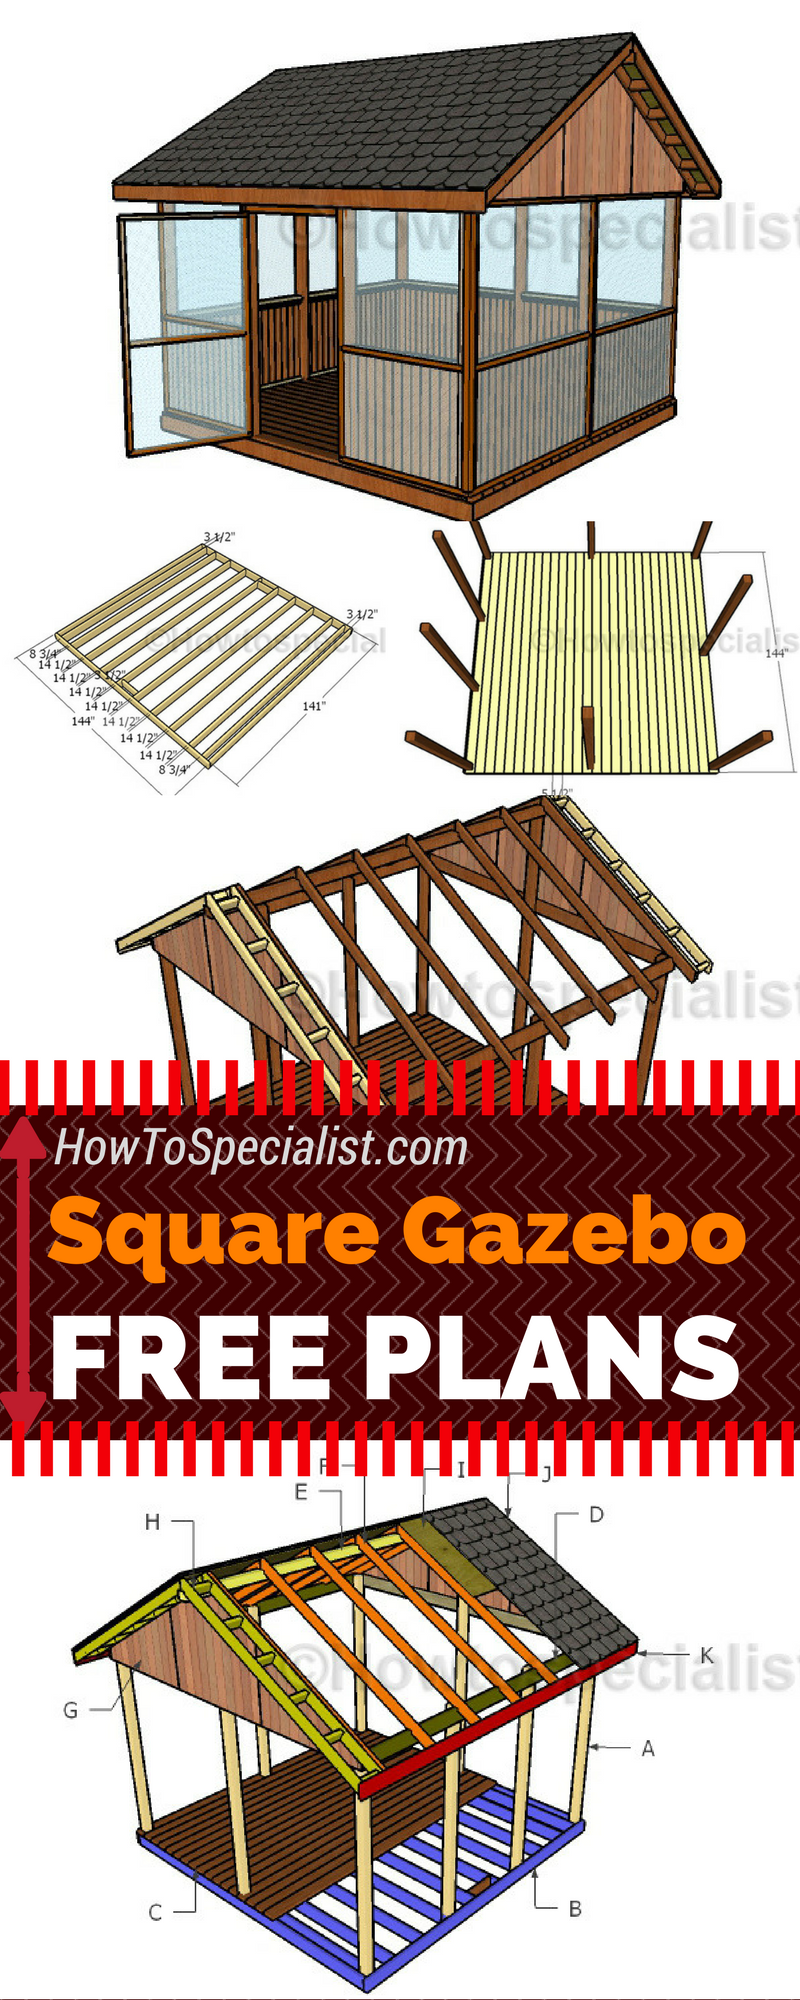 medium resolution of it is super easy to build a screened gazebo for your backyard check out my free square gazebo plans and follow the step by step instructions diy gazebo